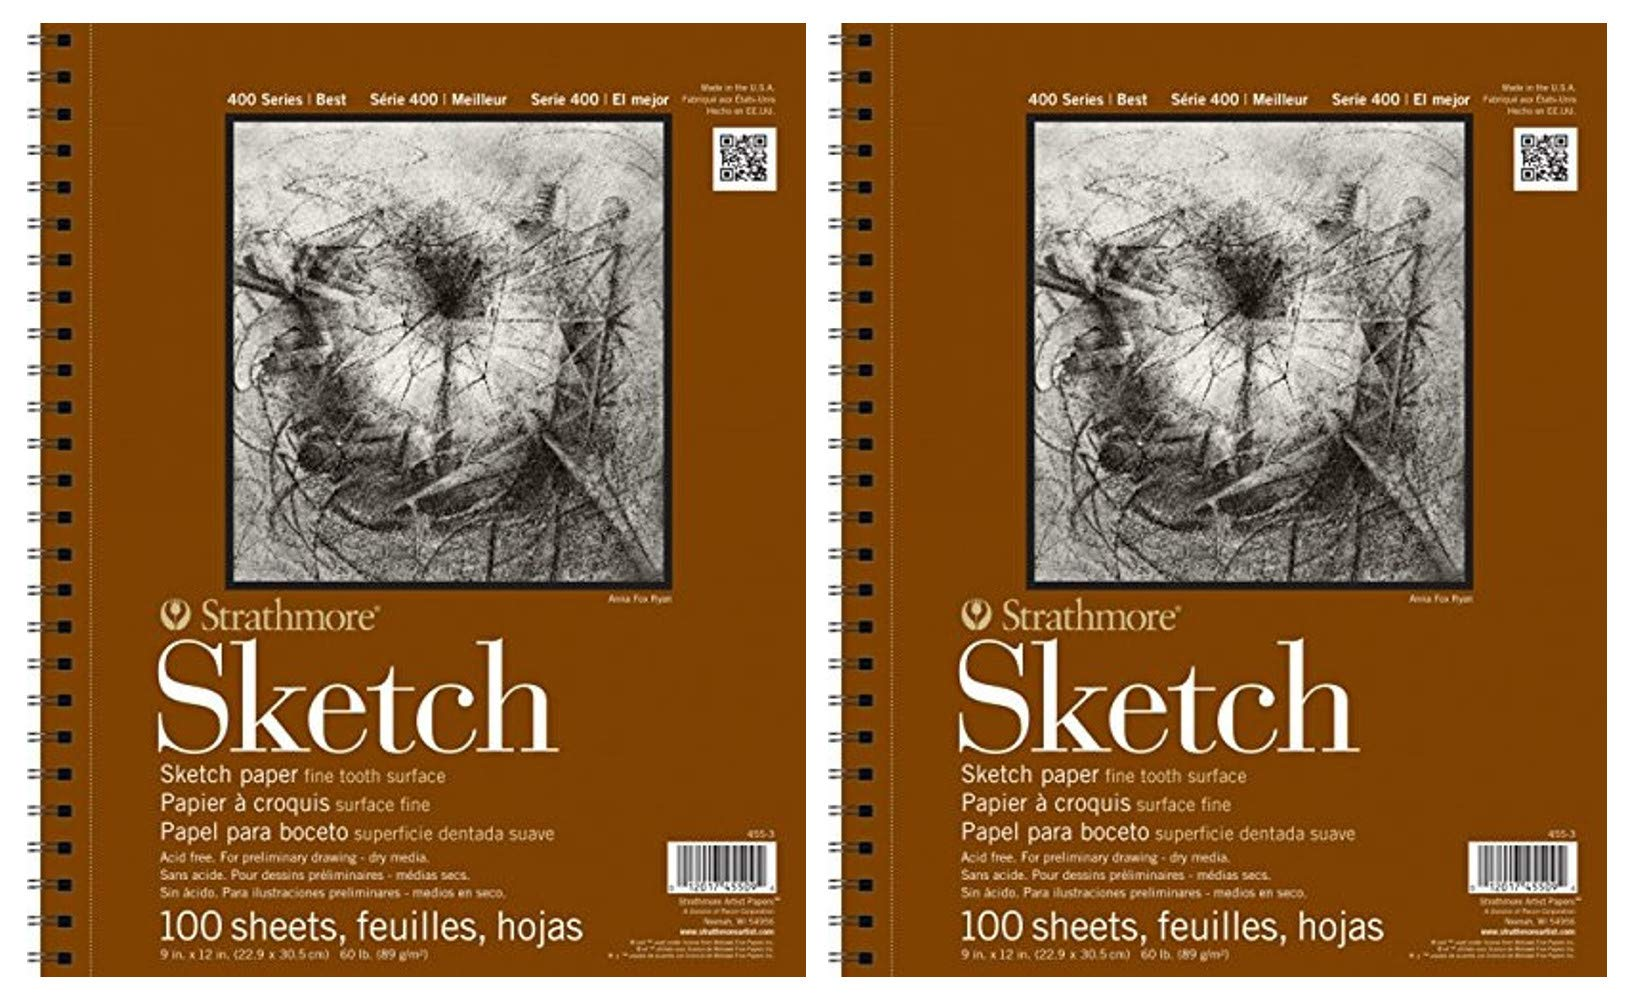 2-Pack - Strathmore 400 Series Sketch Pad, 11''x14'' Wire Bound, 100 Sheets Each by Strathmore